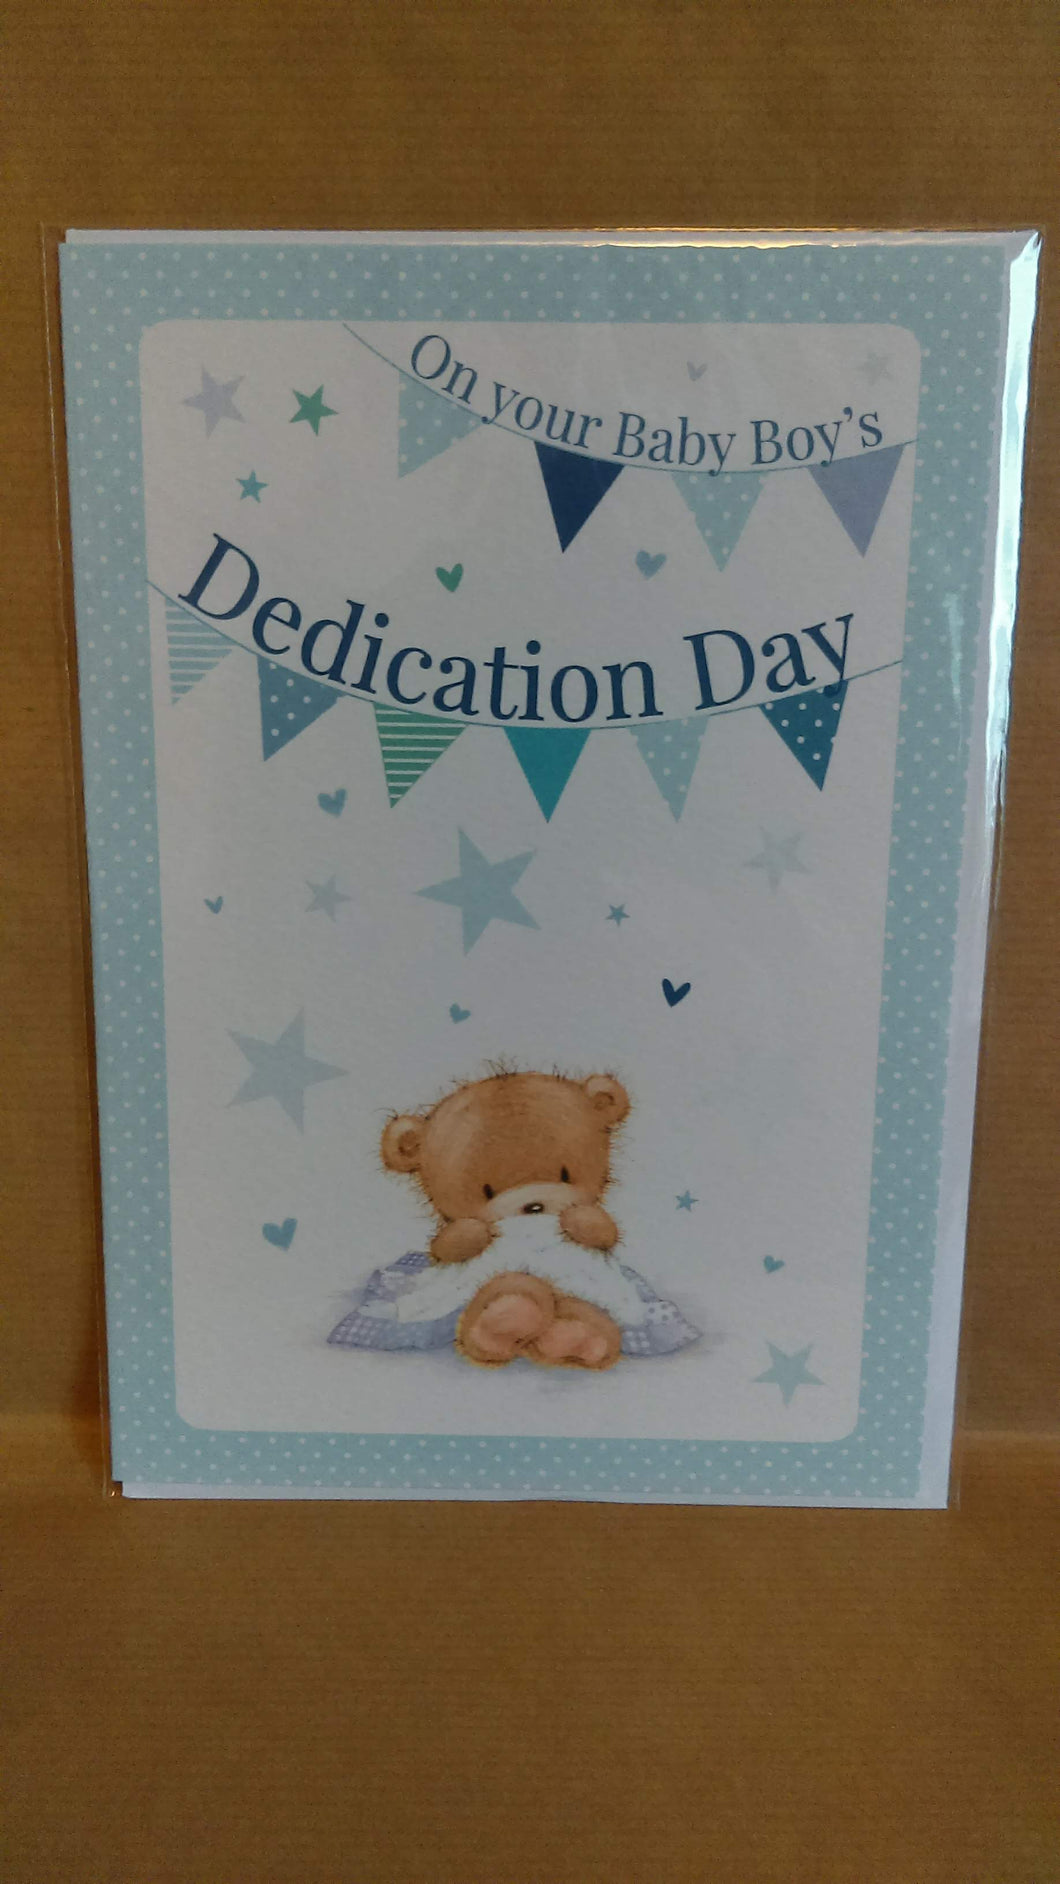 Religious Occasion On your Baby Boy's Dedication Day